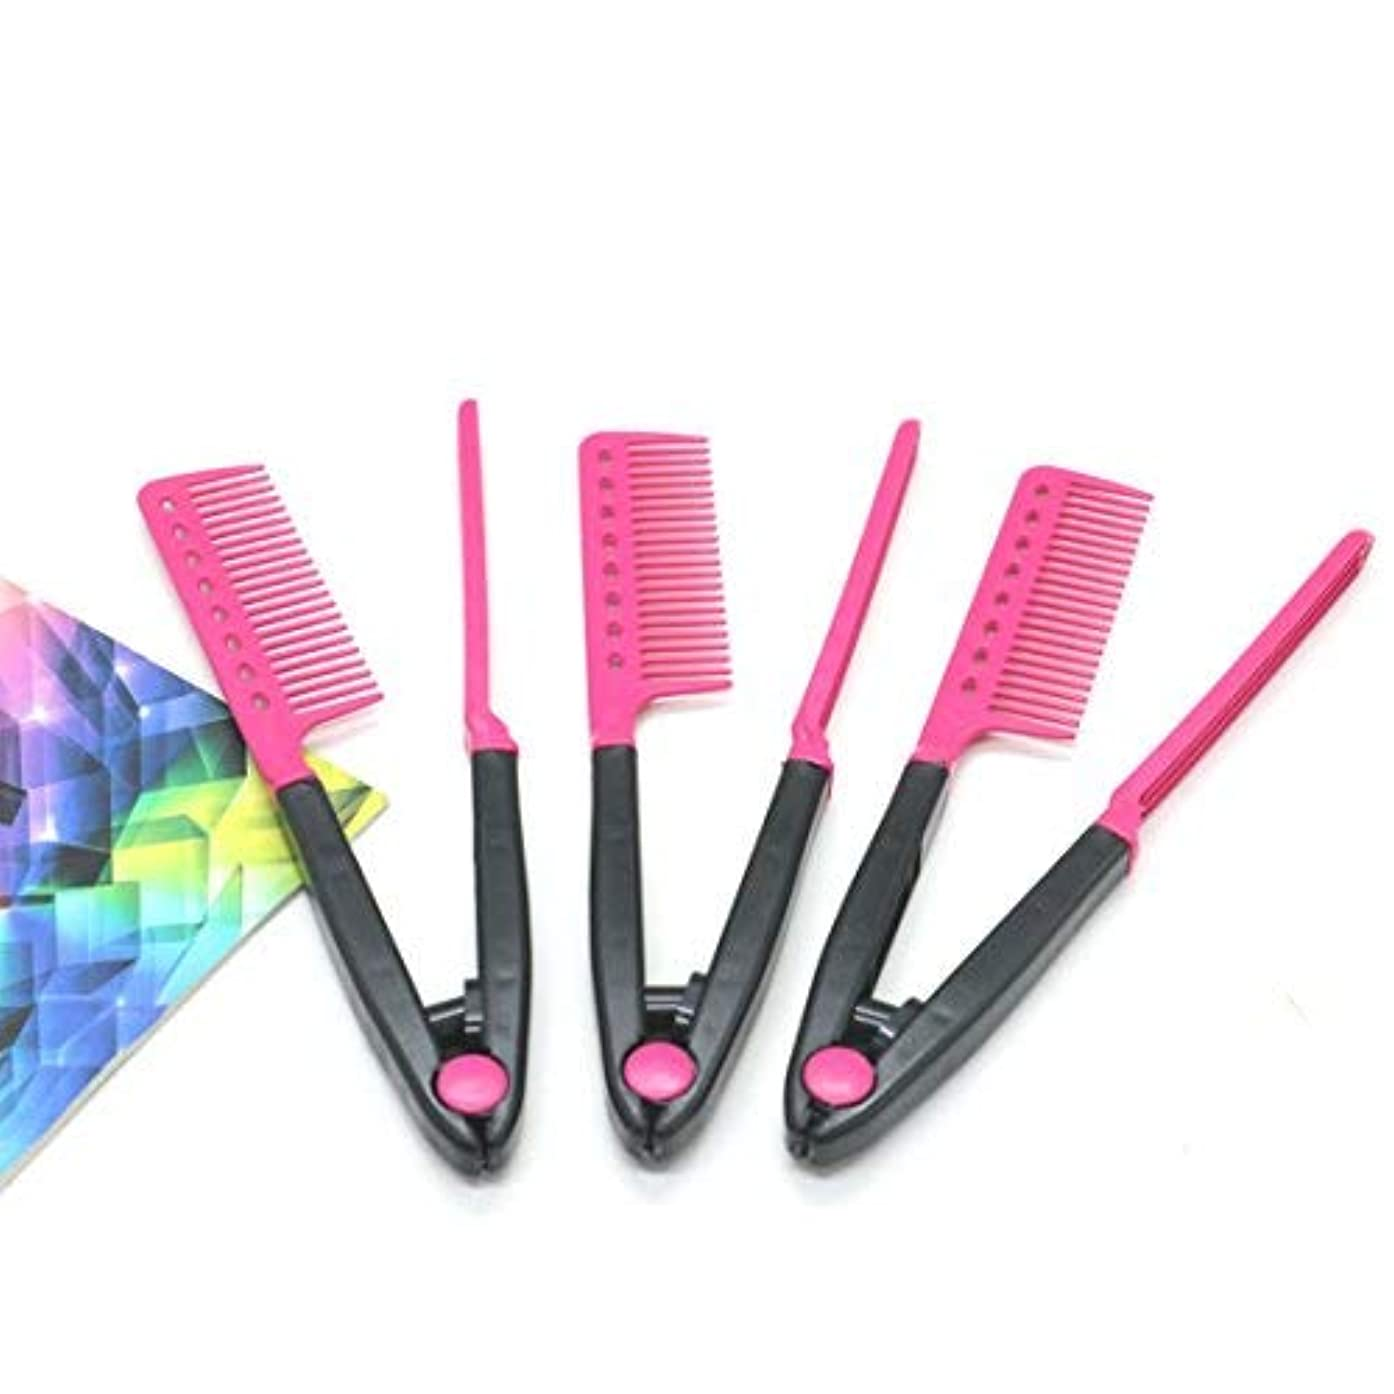 一致するハードちなみにPack Of 3 DIY Hair Straightener V Shape Comb By IDS [並行輸入品]